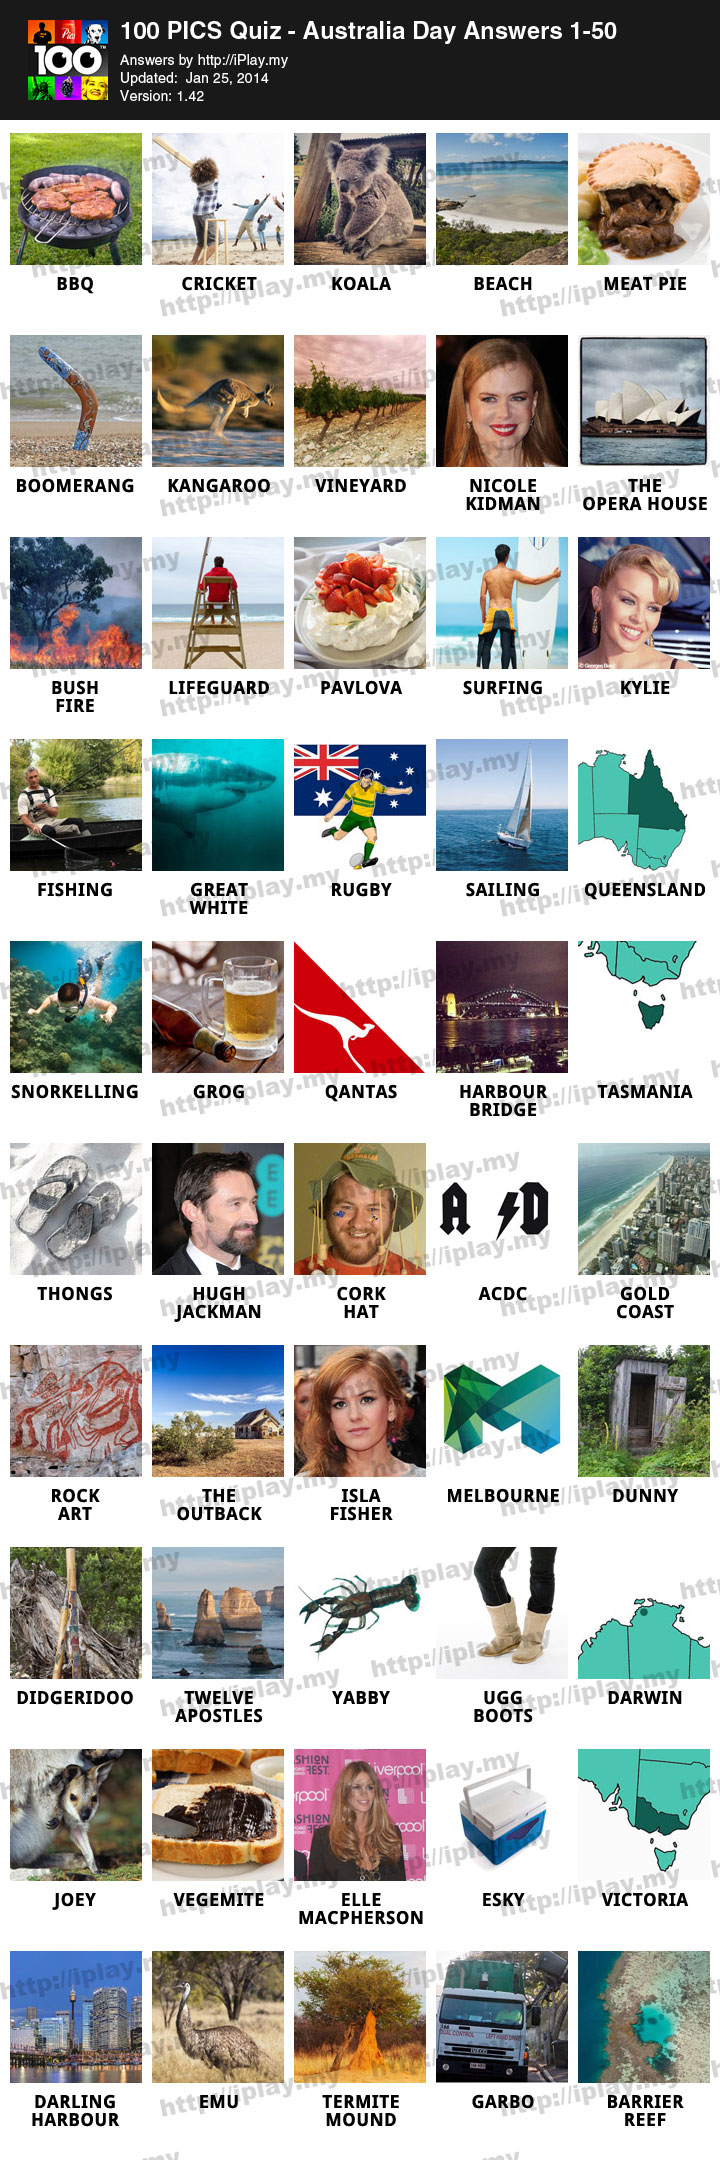 100-Pics-Quiz-Australia-Day-Answers-1-50